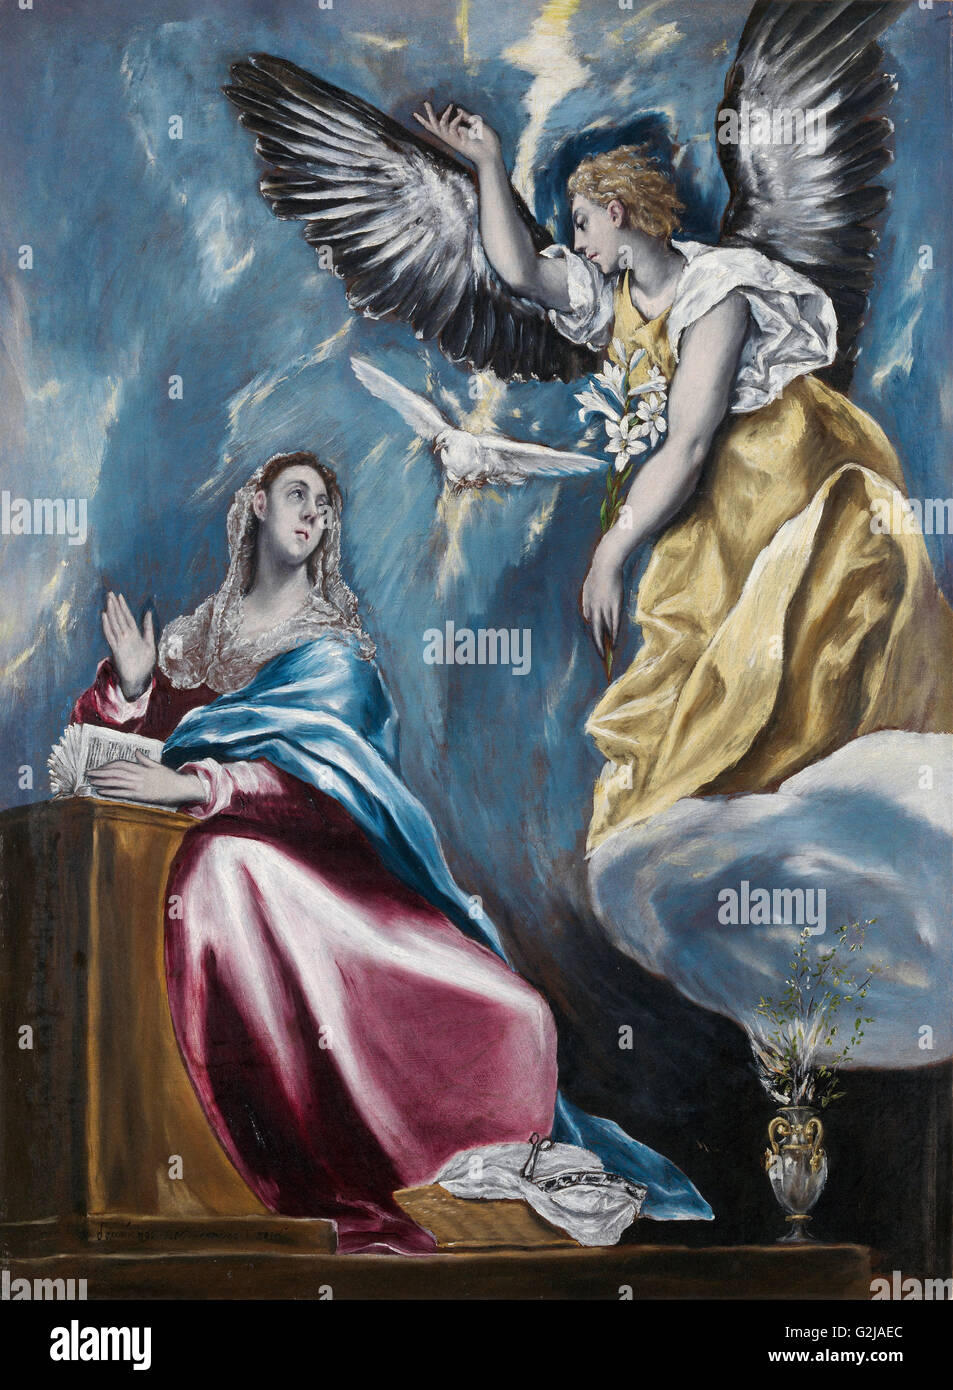 El Greco - The Annunciation  - Museum of Fine Arts, Budapest - Stock Image